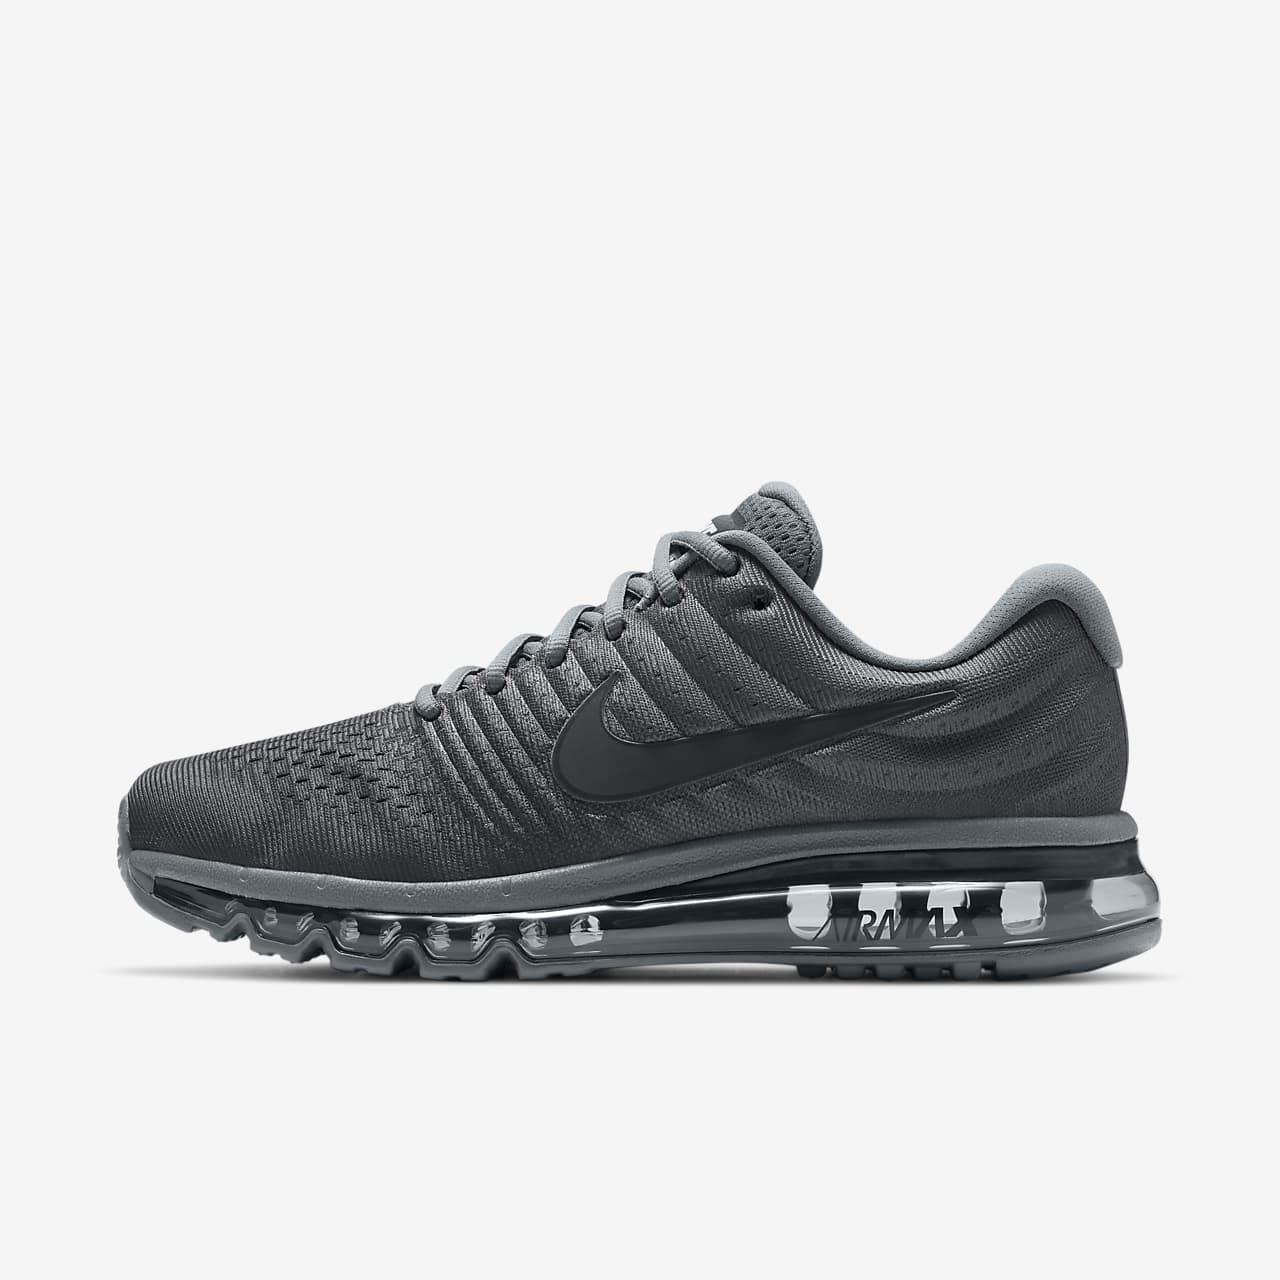 acbf41c8b1 Nike Air Max 2017 Men s Shoe. Nike.com